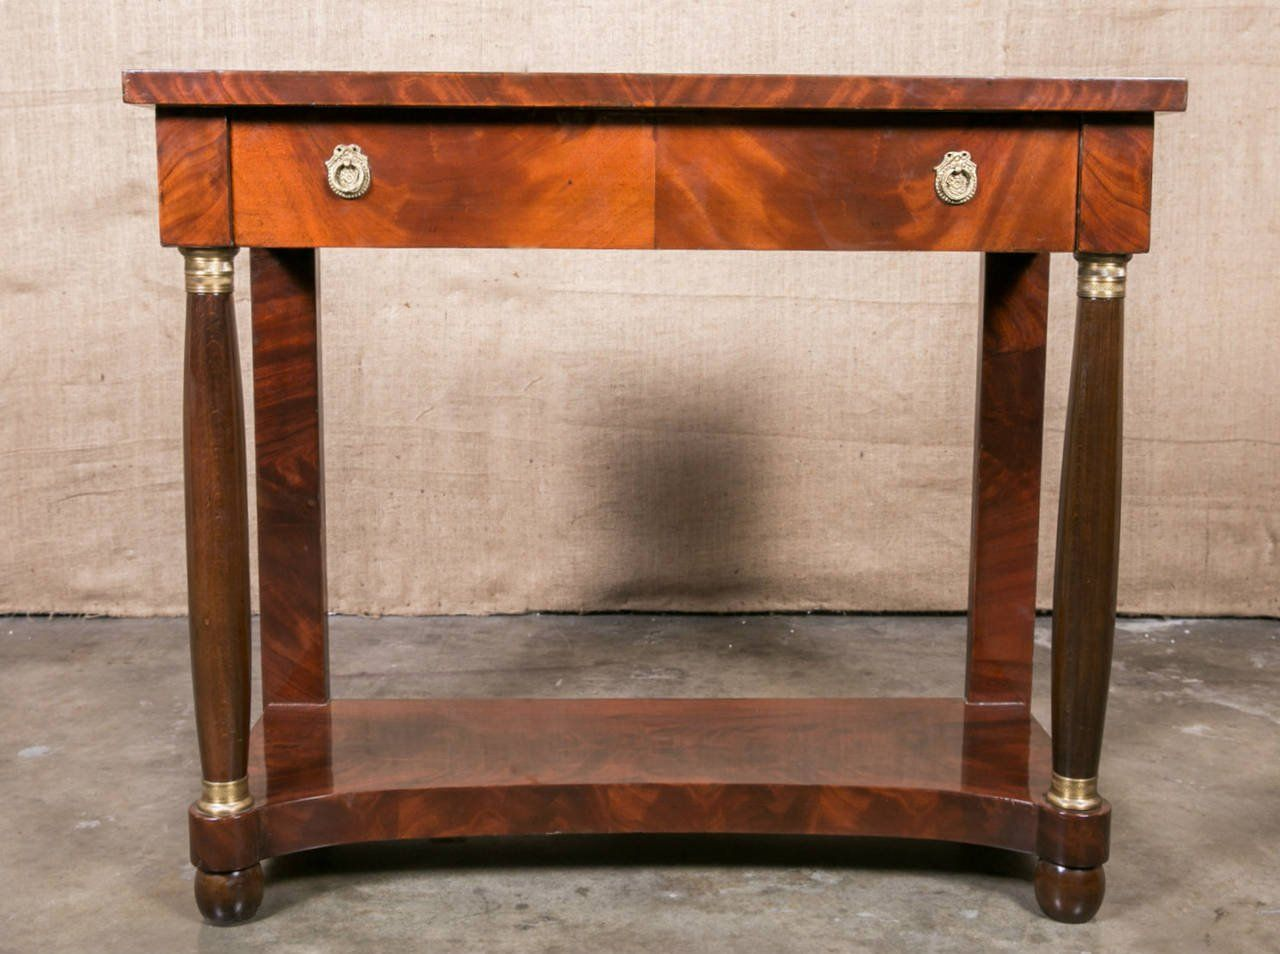 French empire mahogany console table french empire console french empire mahogany console table geotapseo Gallery